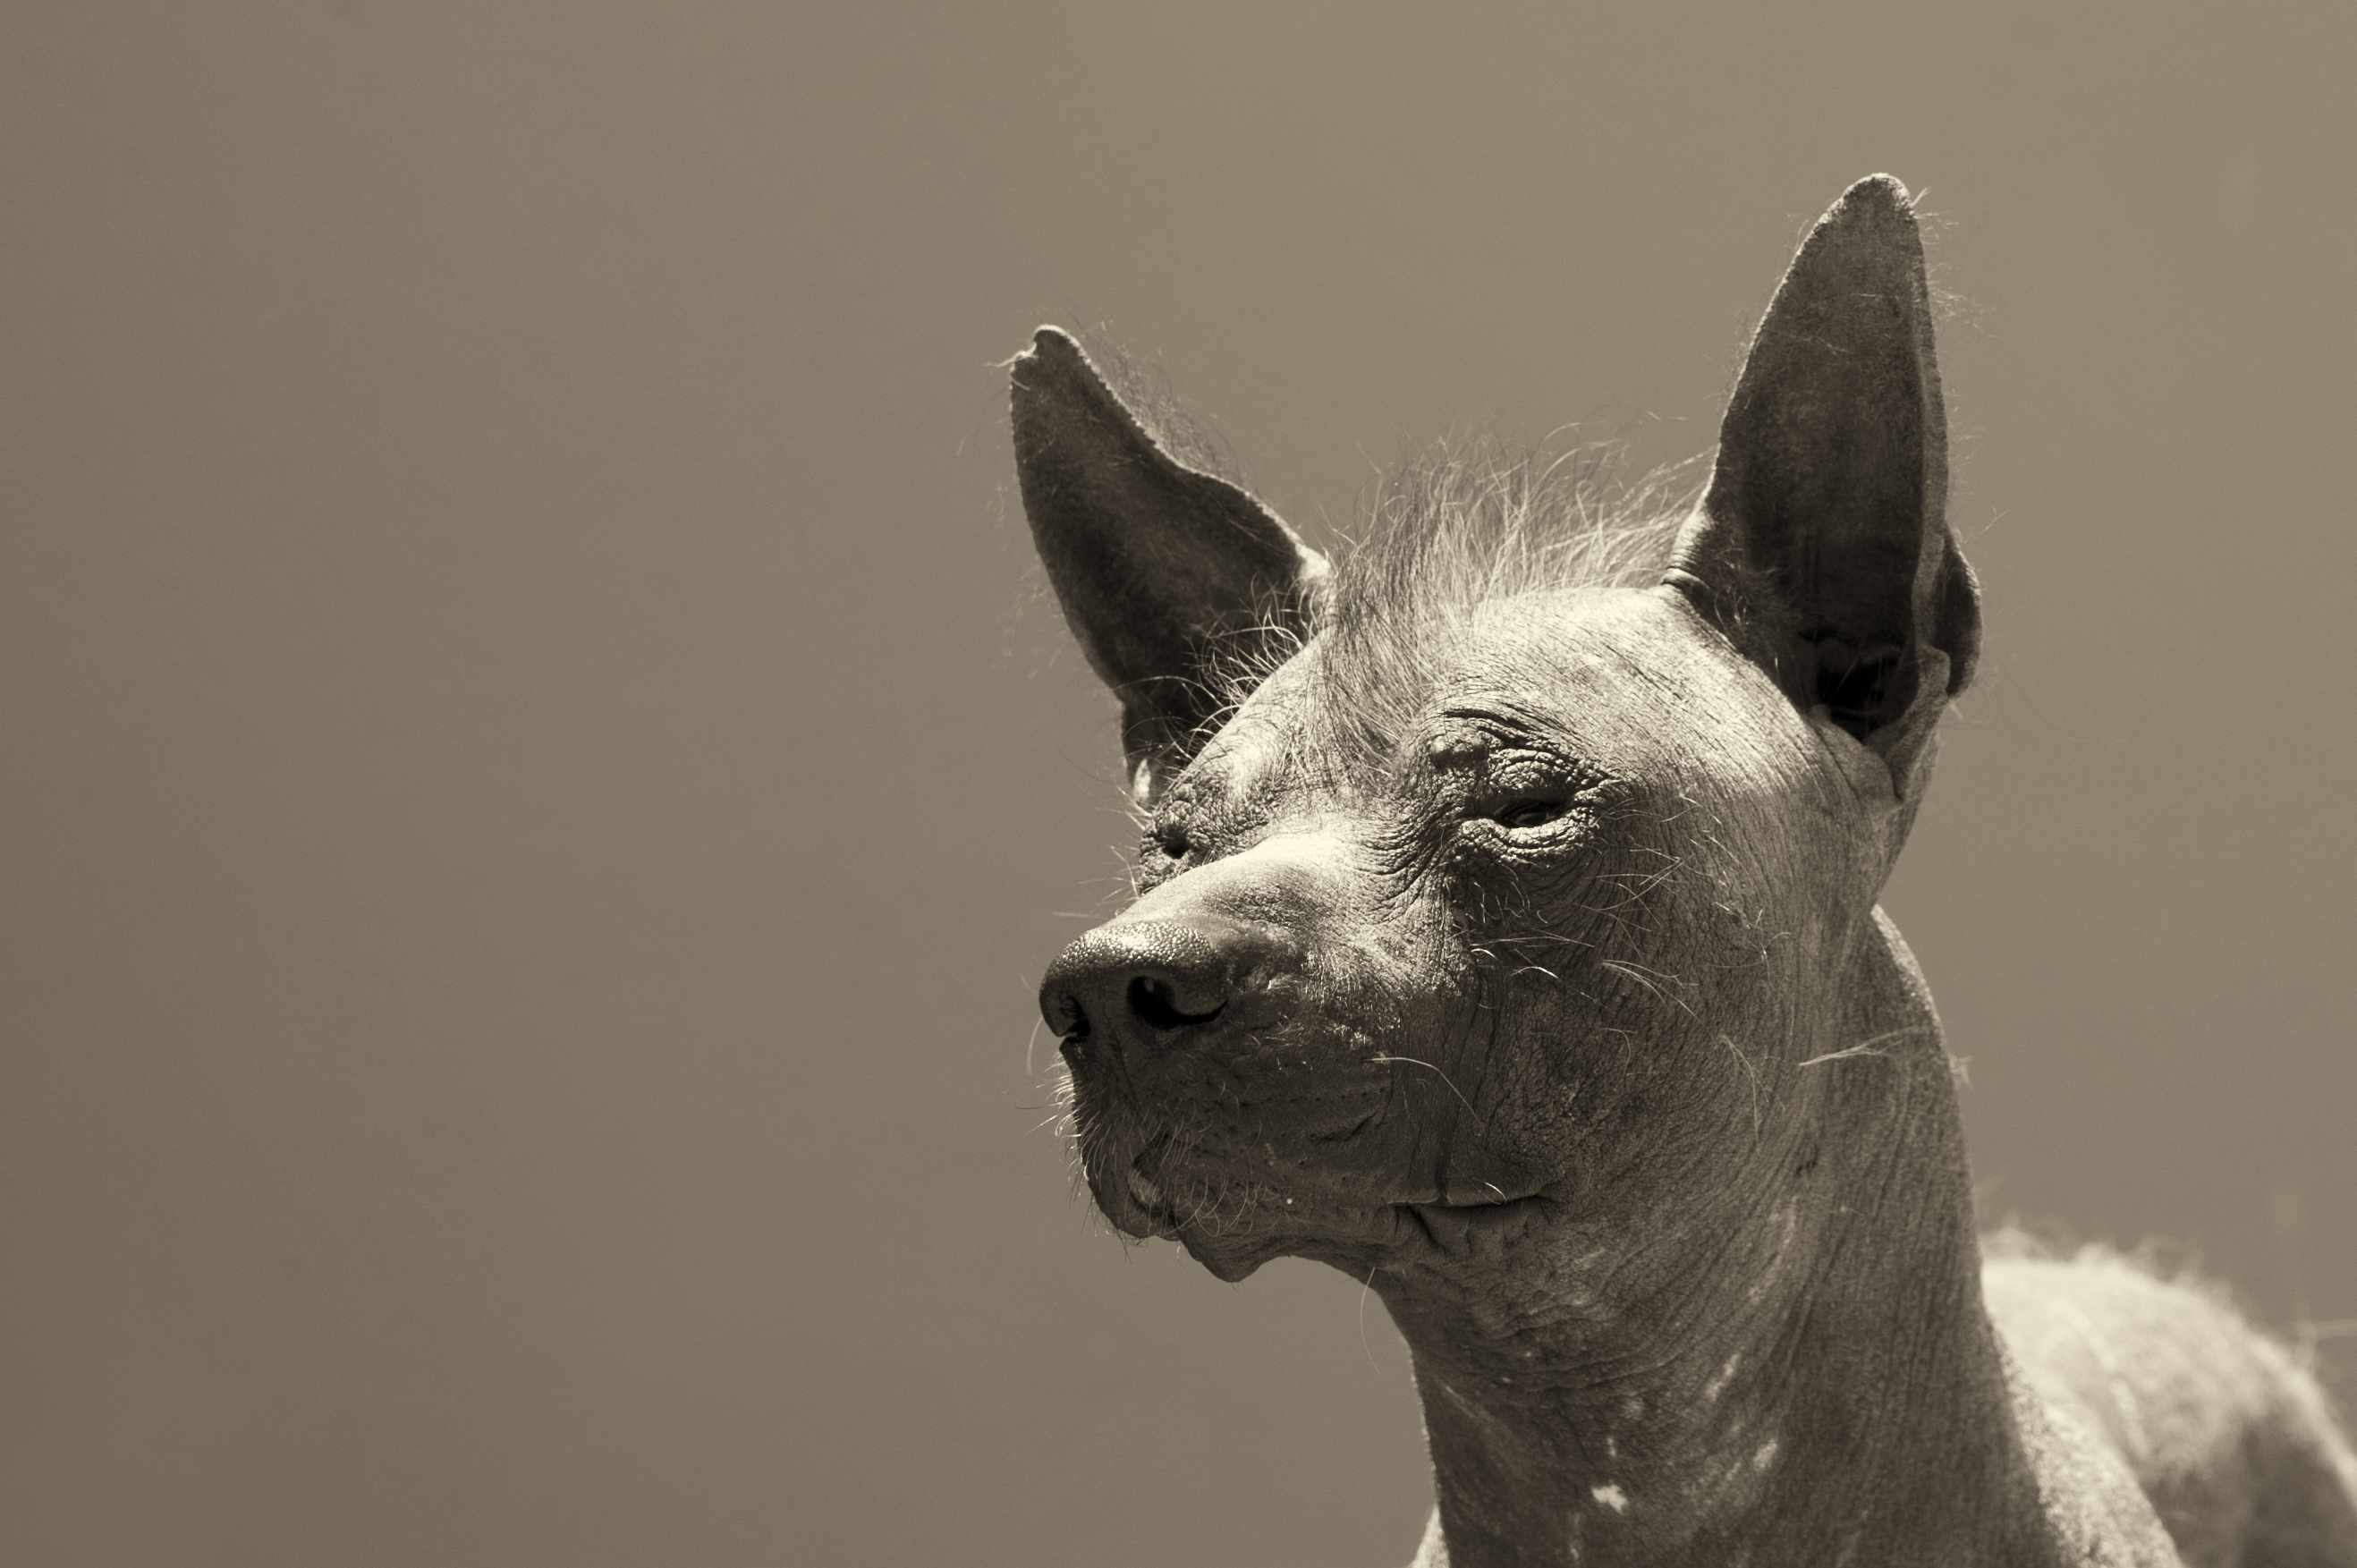 A hairless dog with wisps of hair on its head.